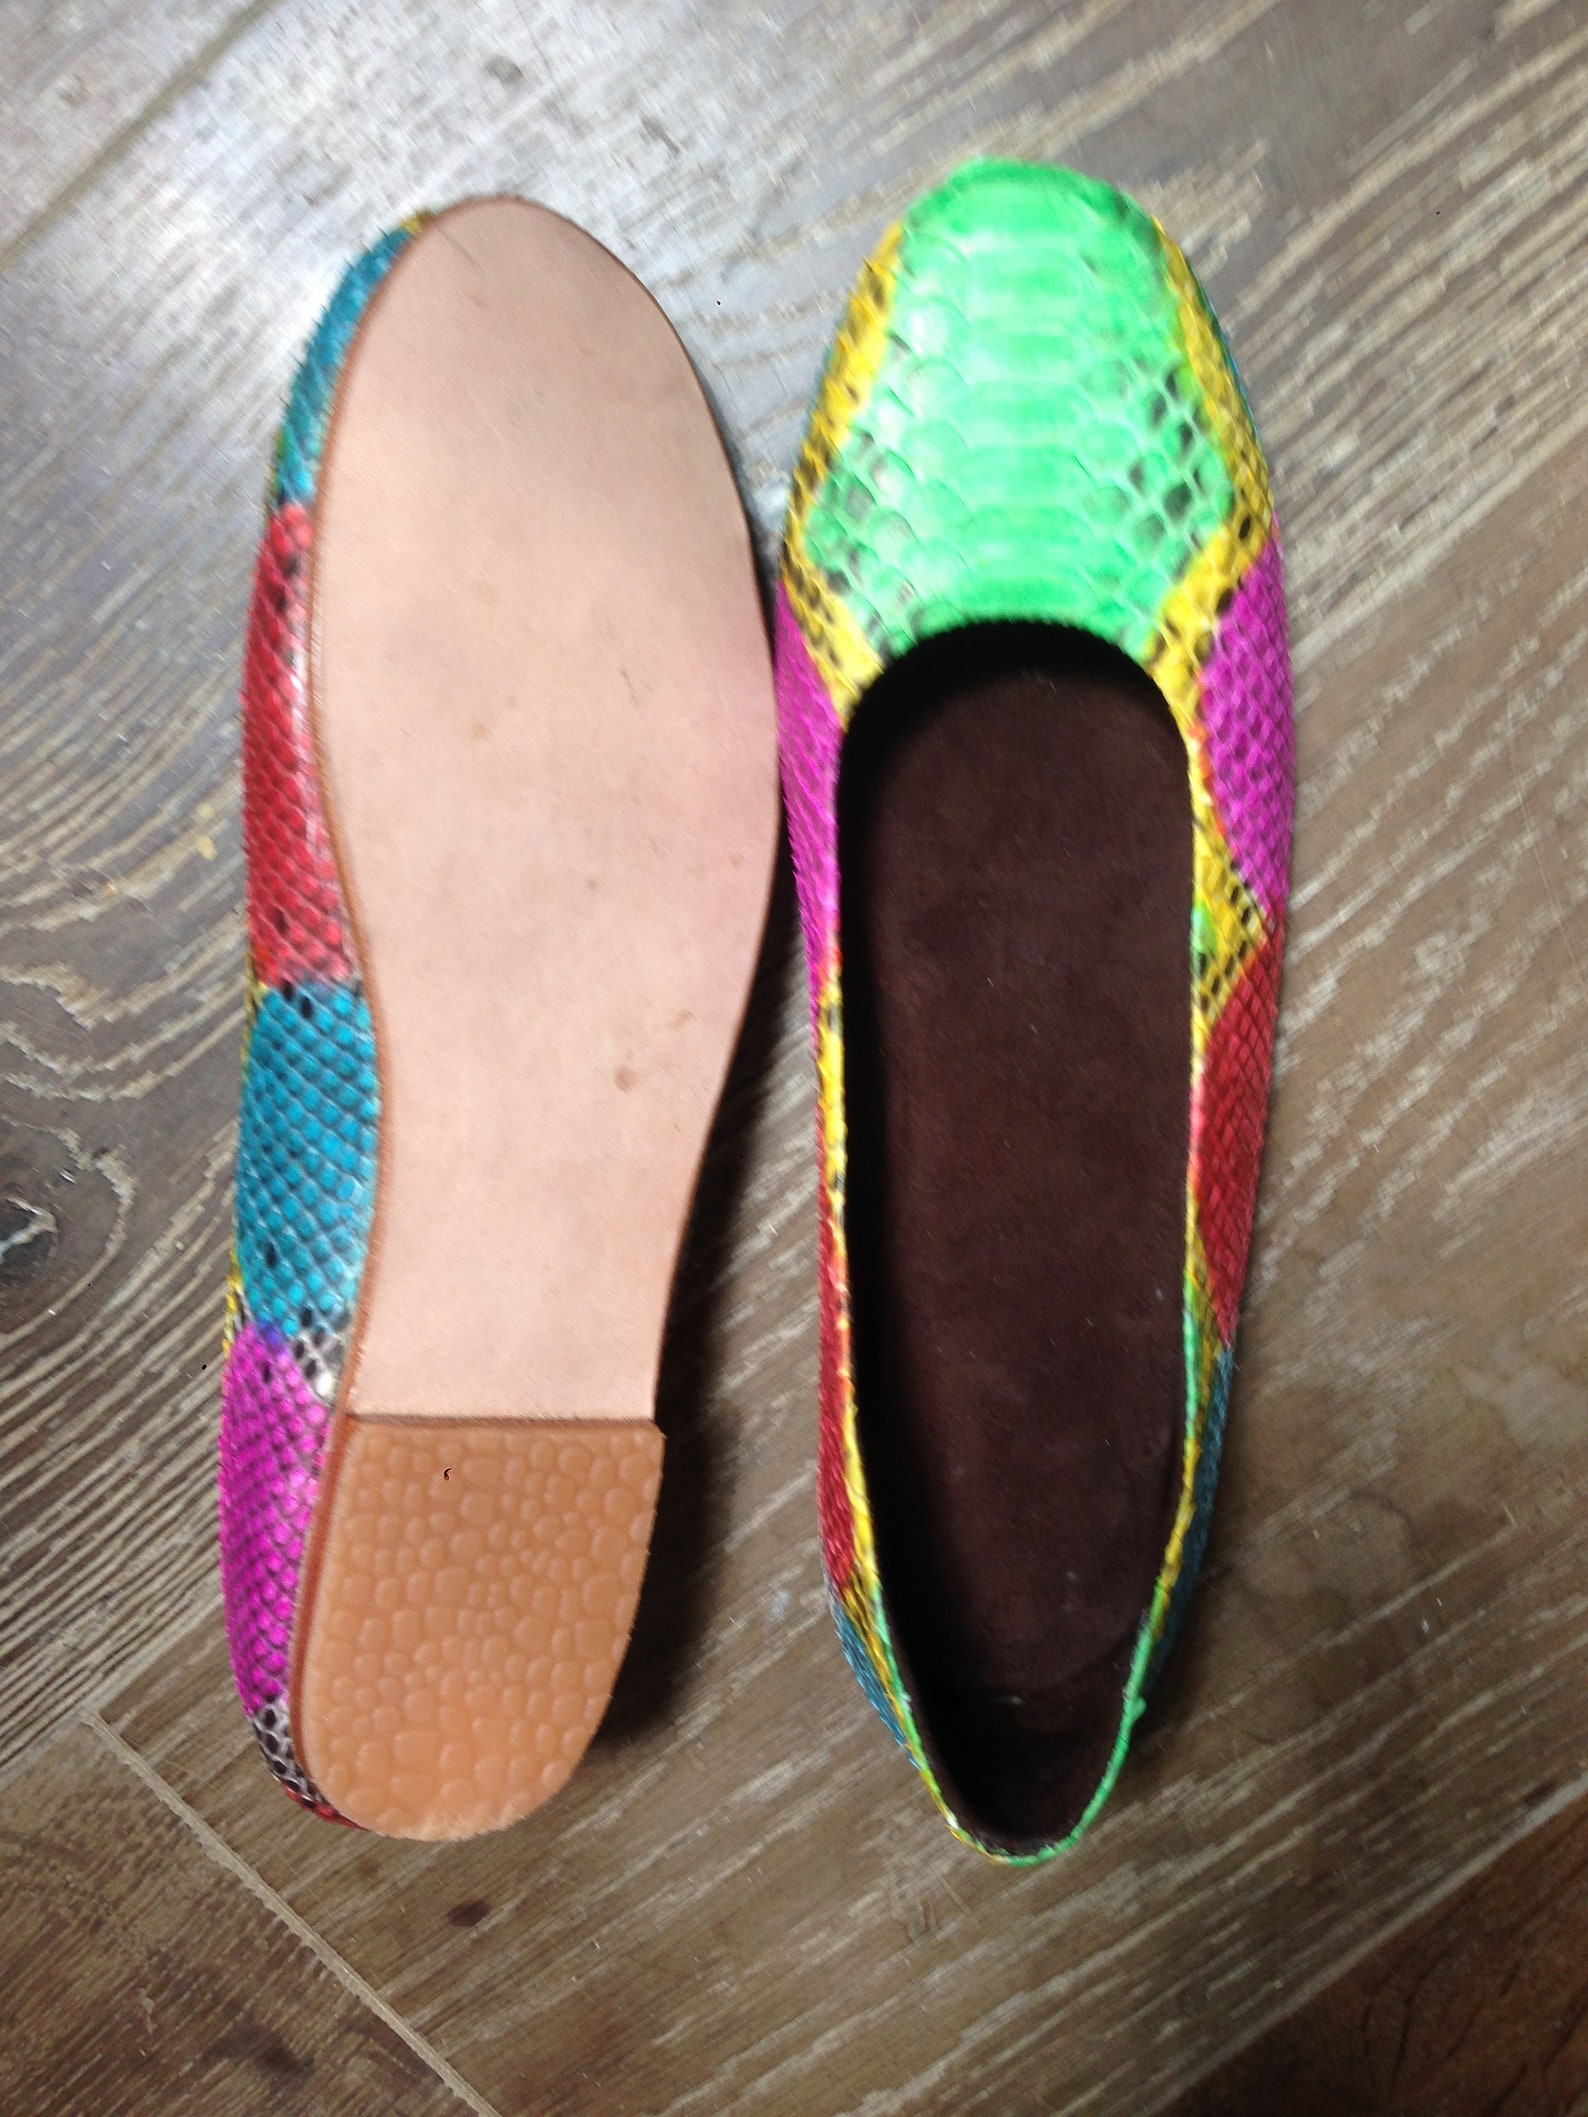 sale 30% off, multicolor python leather ballet flats, size 9 us